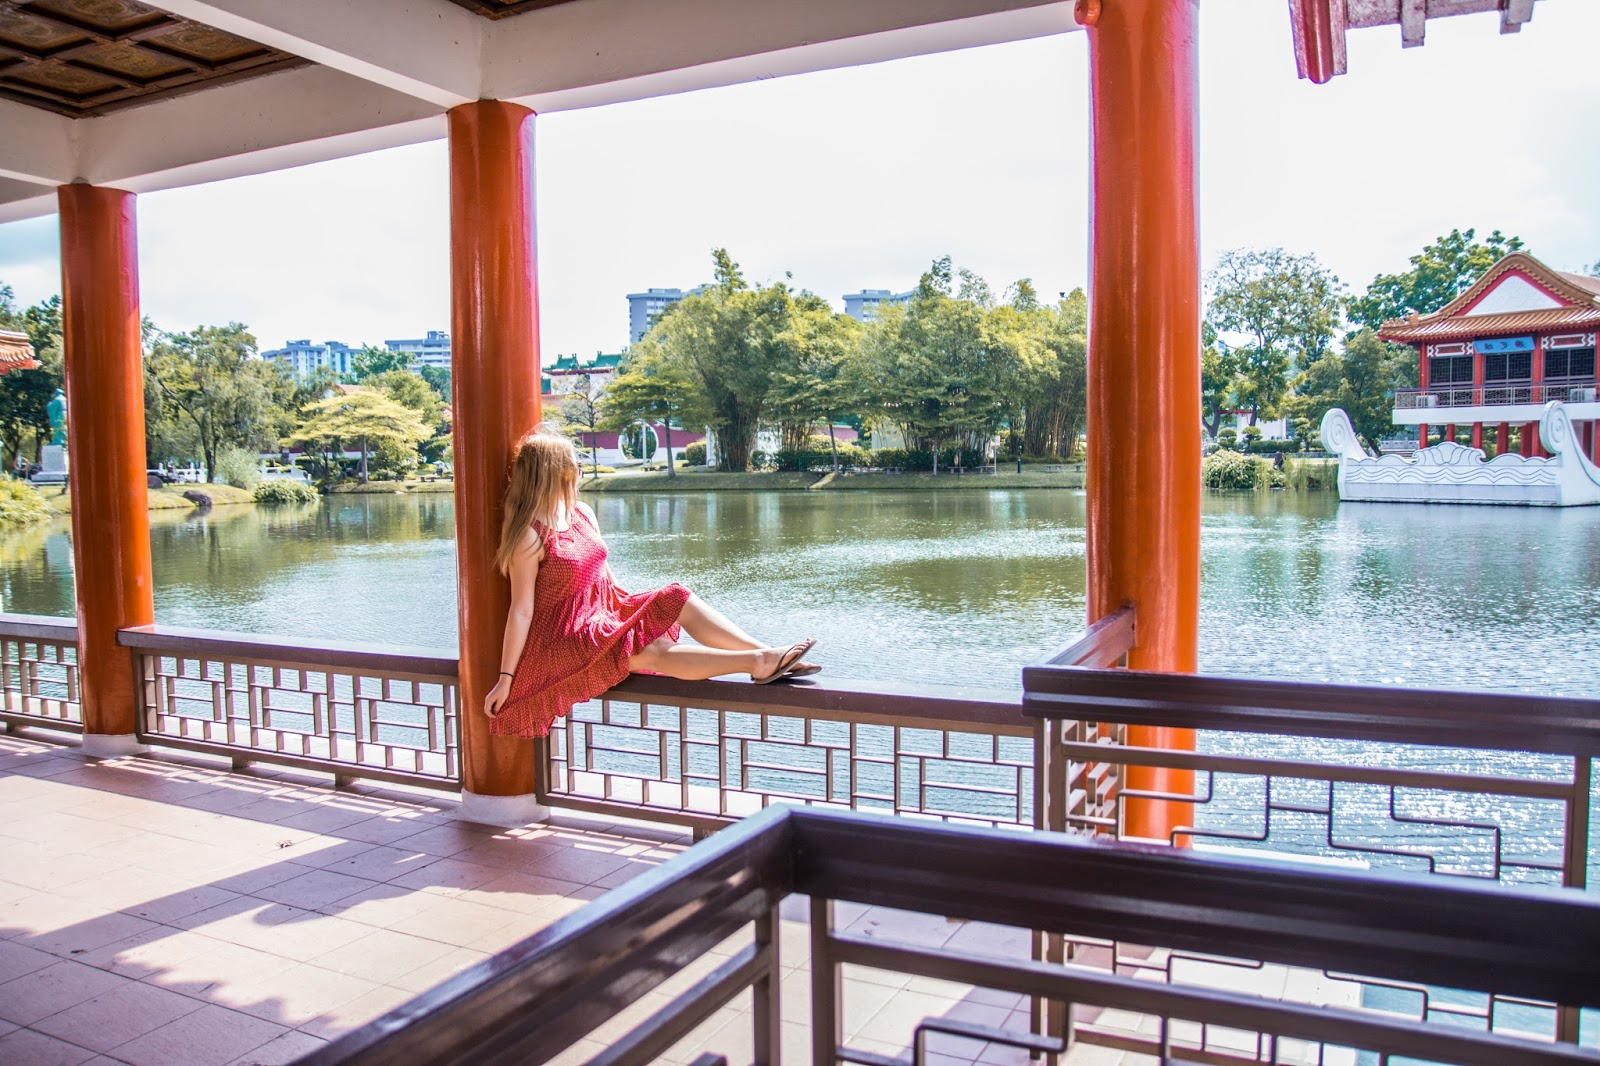 My Zen Experience At The Chinese And Japanese Gardens in Singpaore